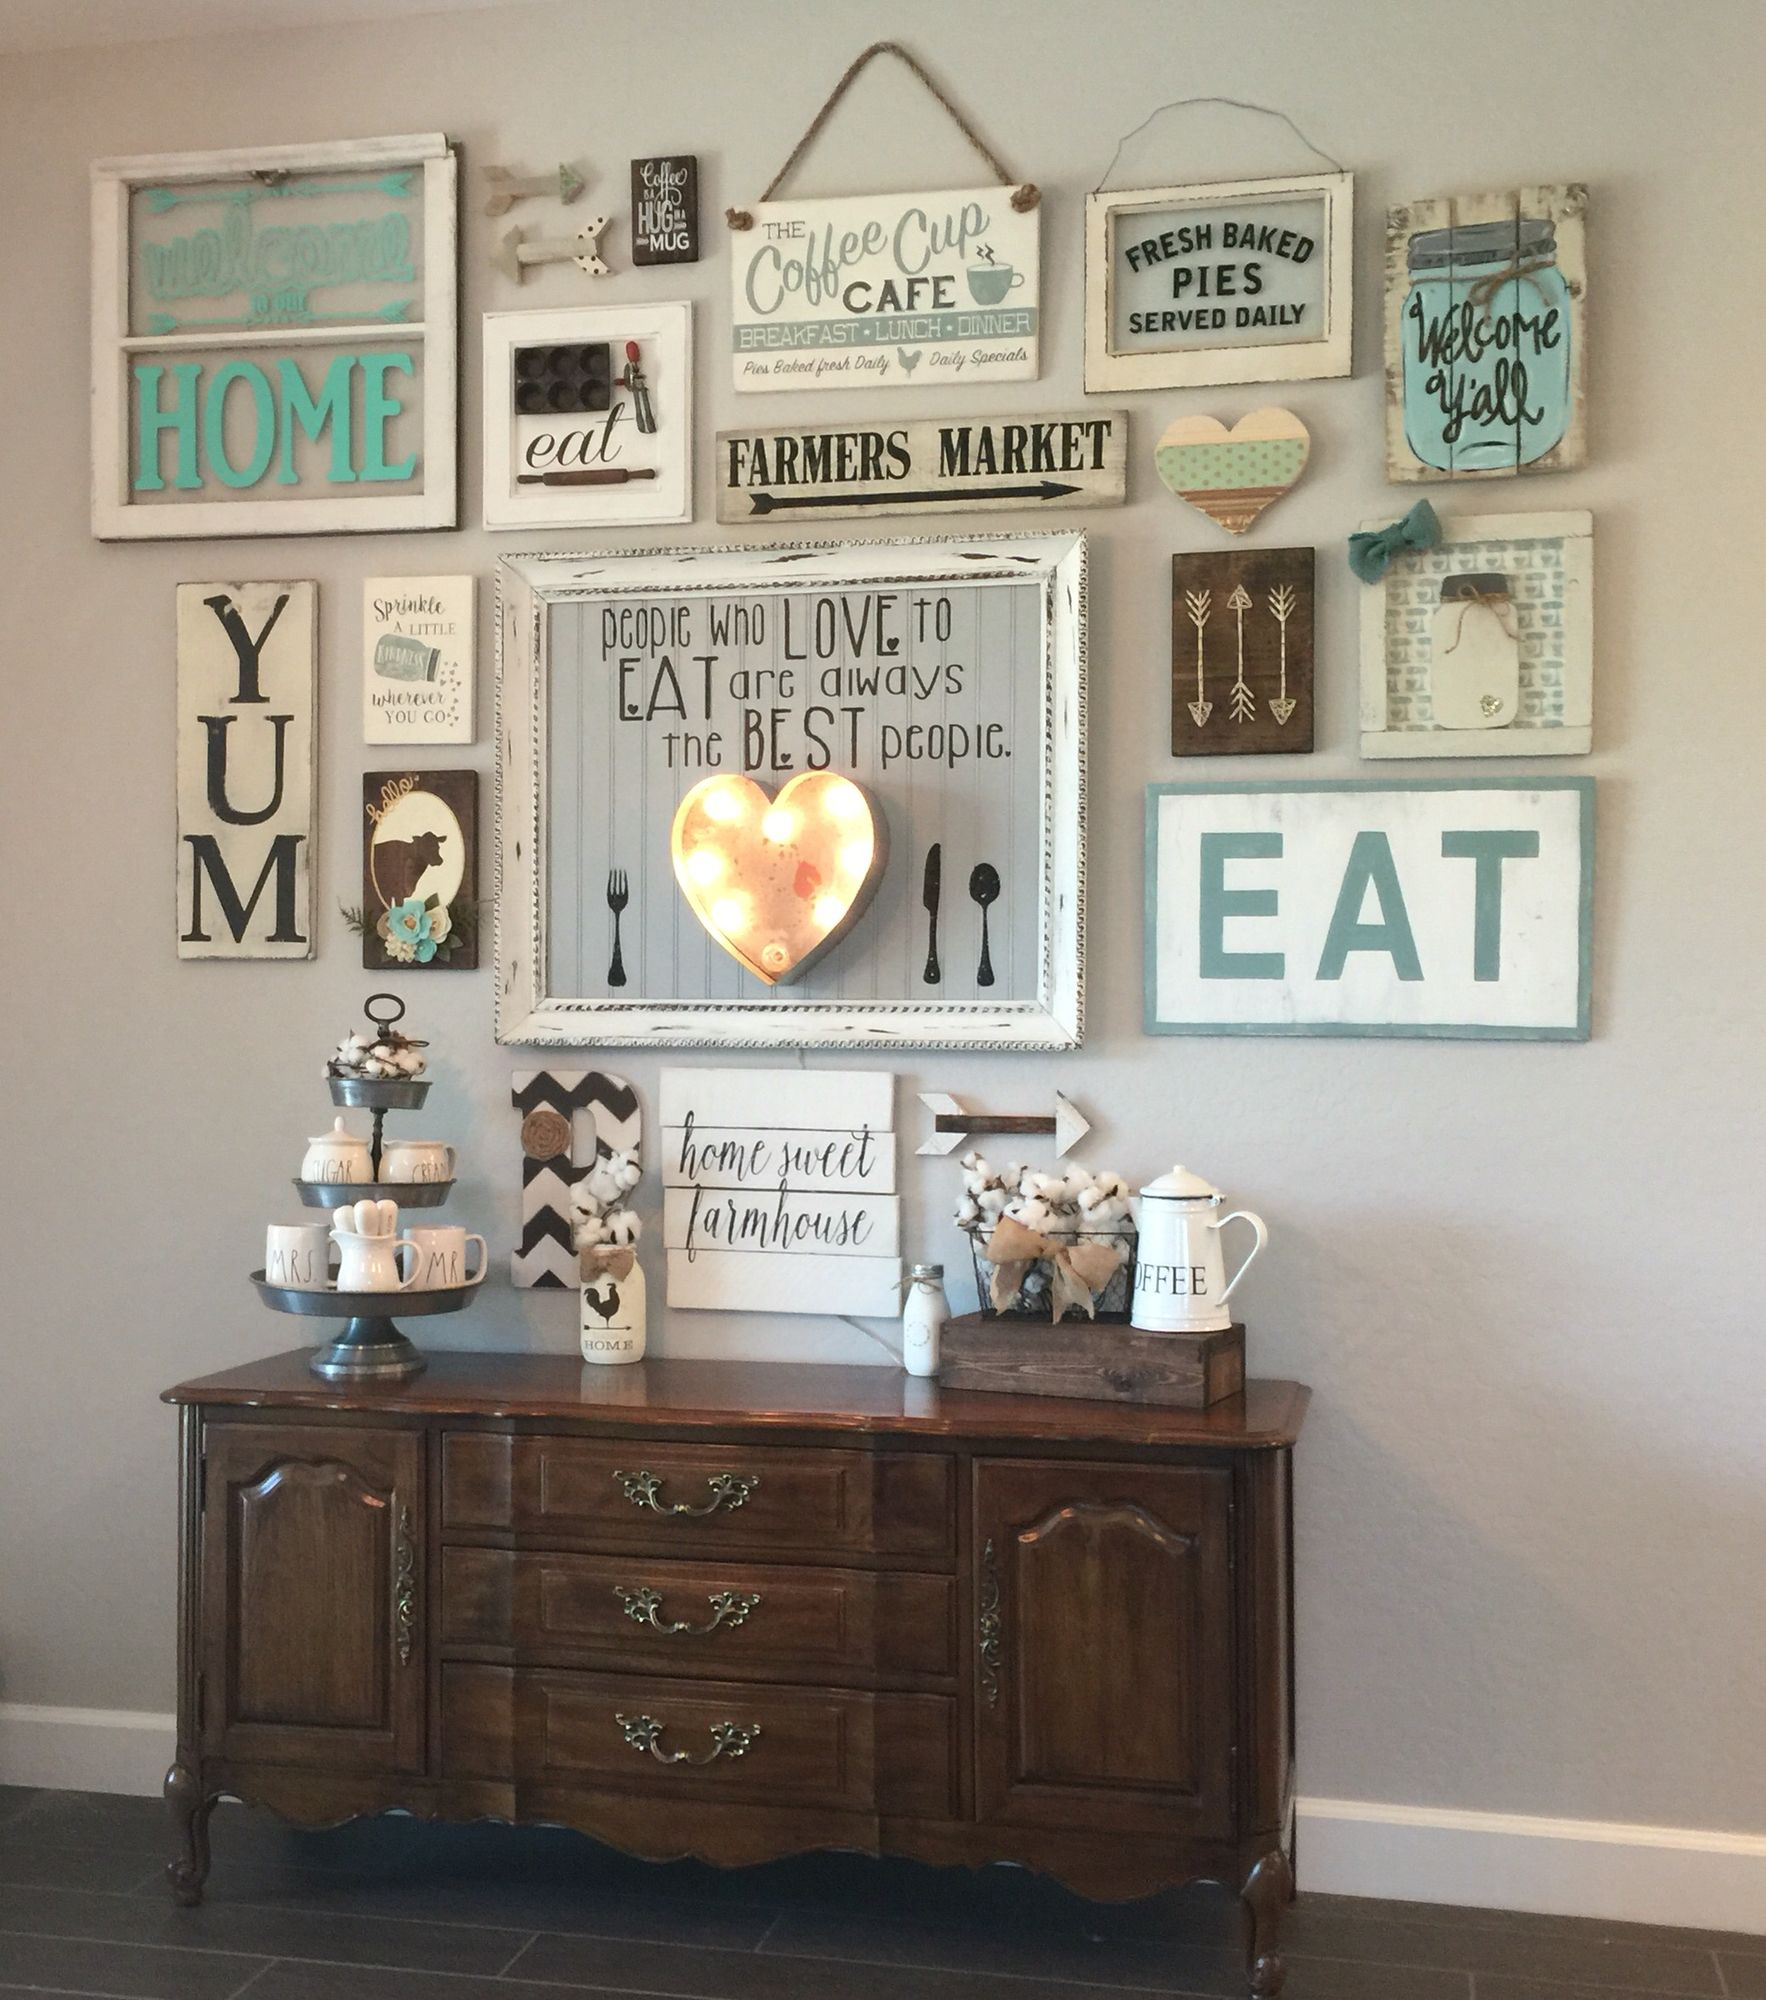 My gallery wall in our kitchen i39m colewifey on ig for Kitchen colors with white cabinets with rusted metal wall art